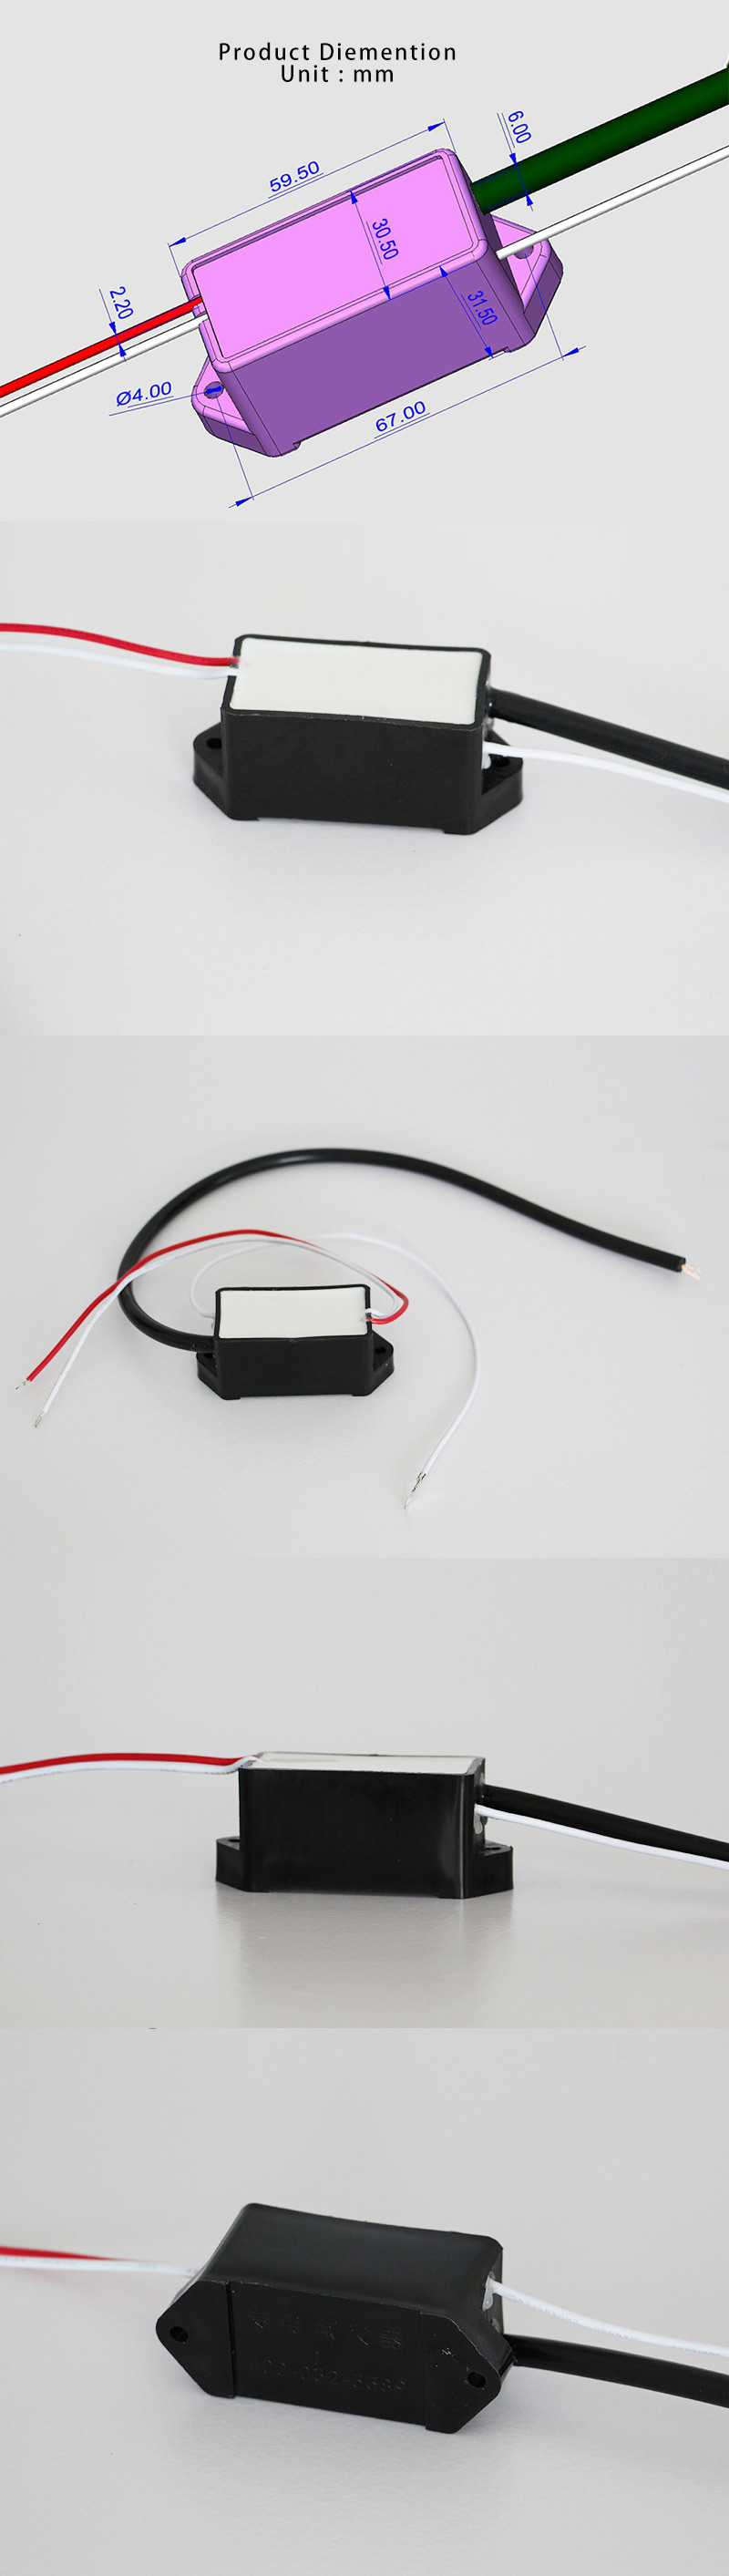 12V Ignitor Igniter for Mist and Fog Machine